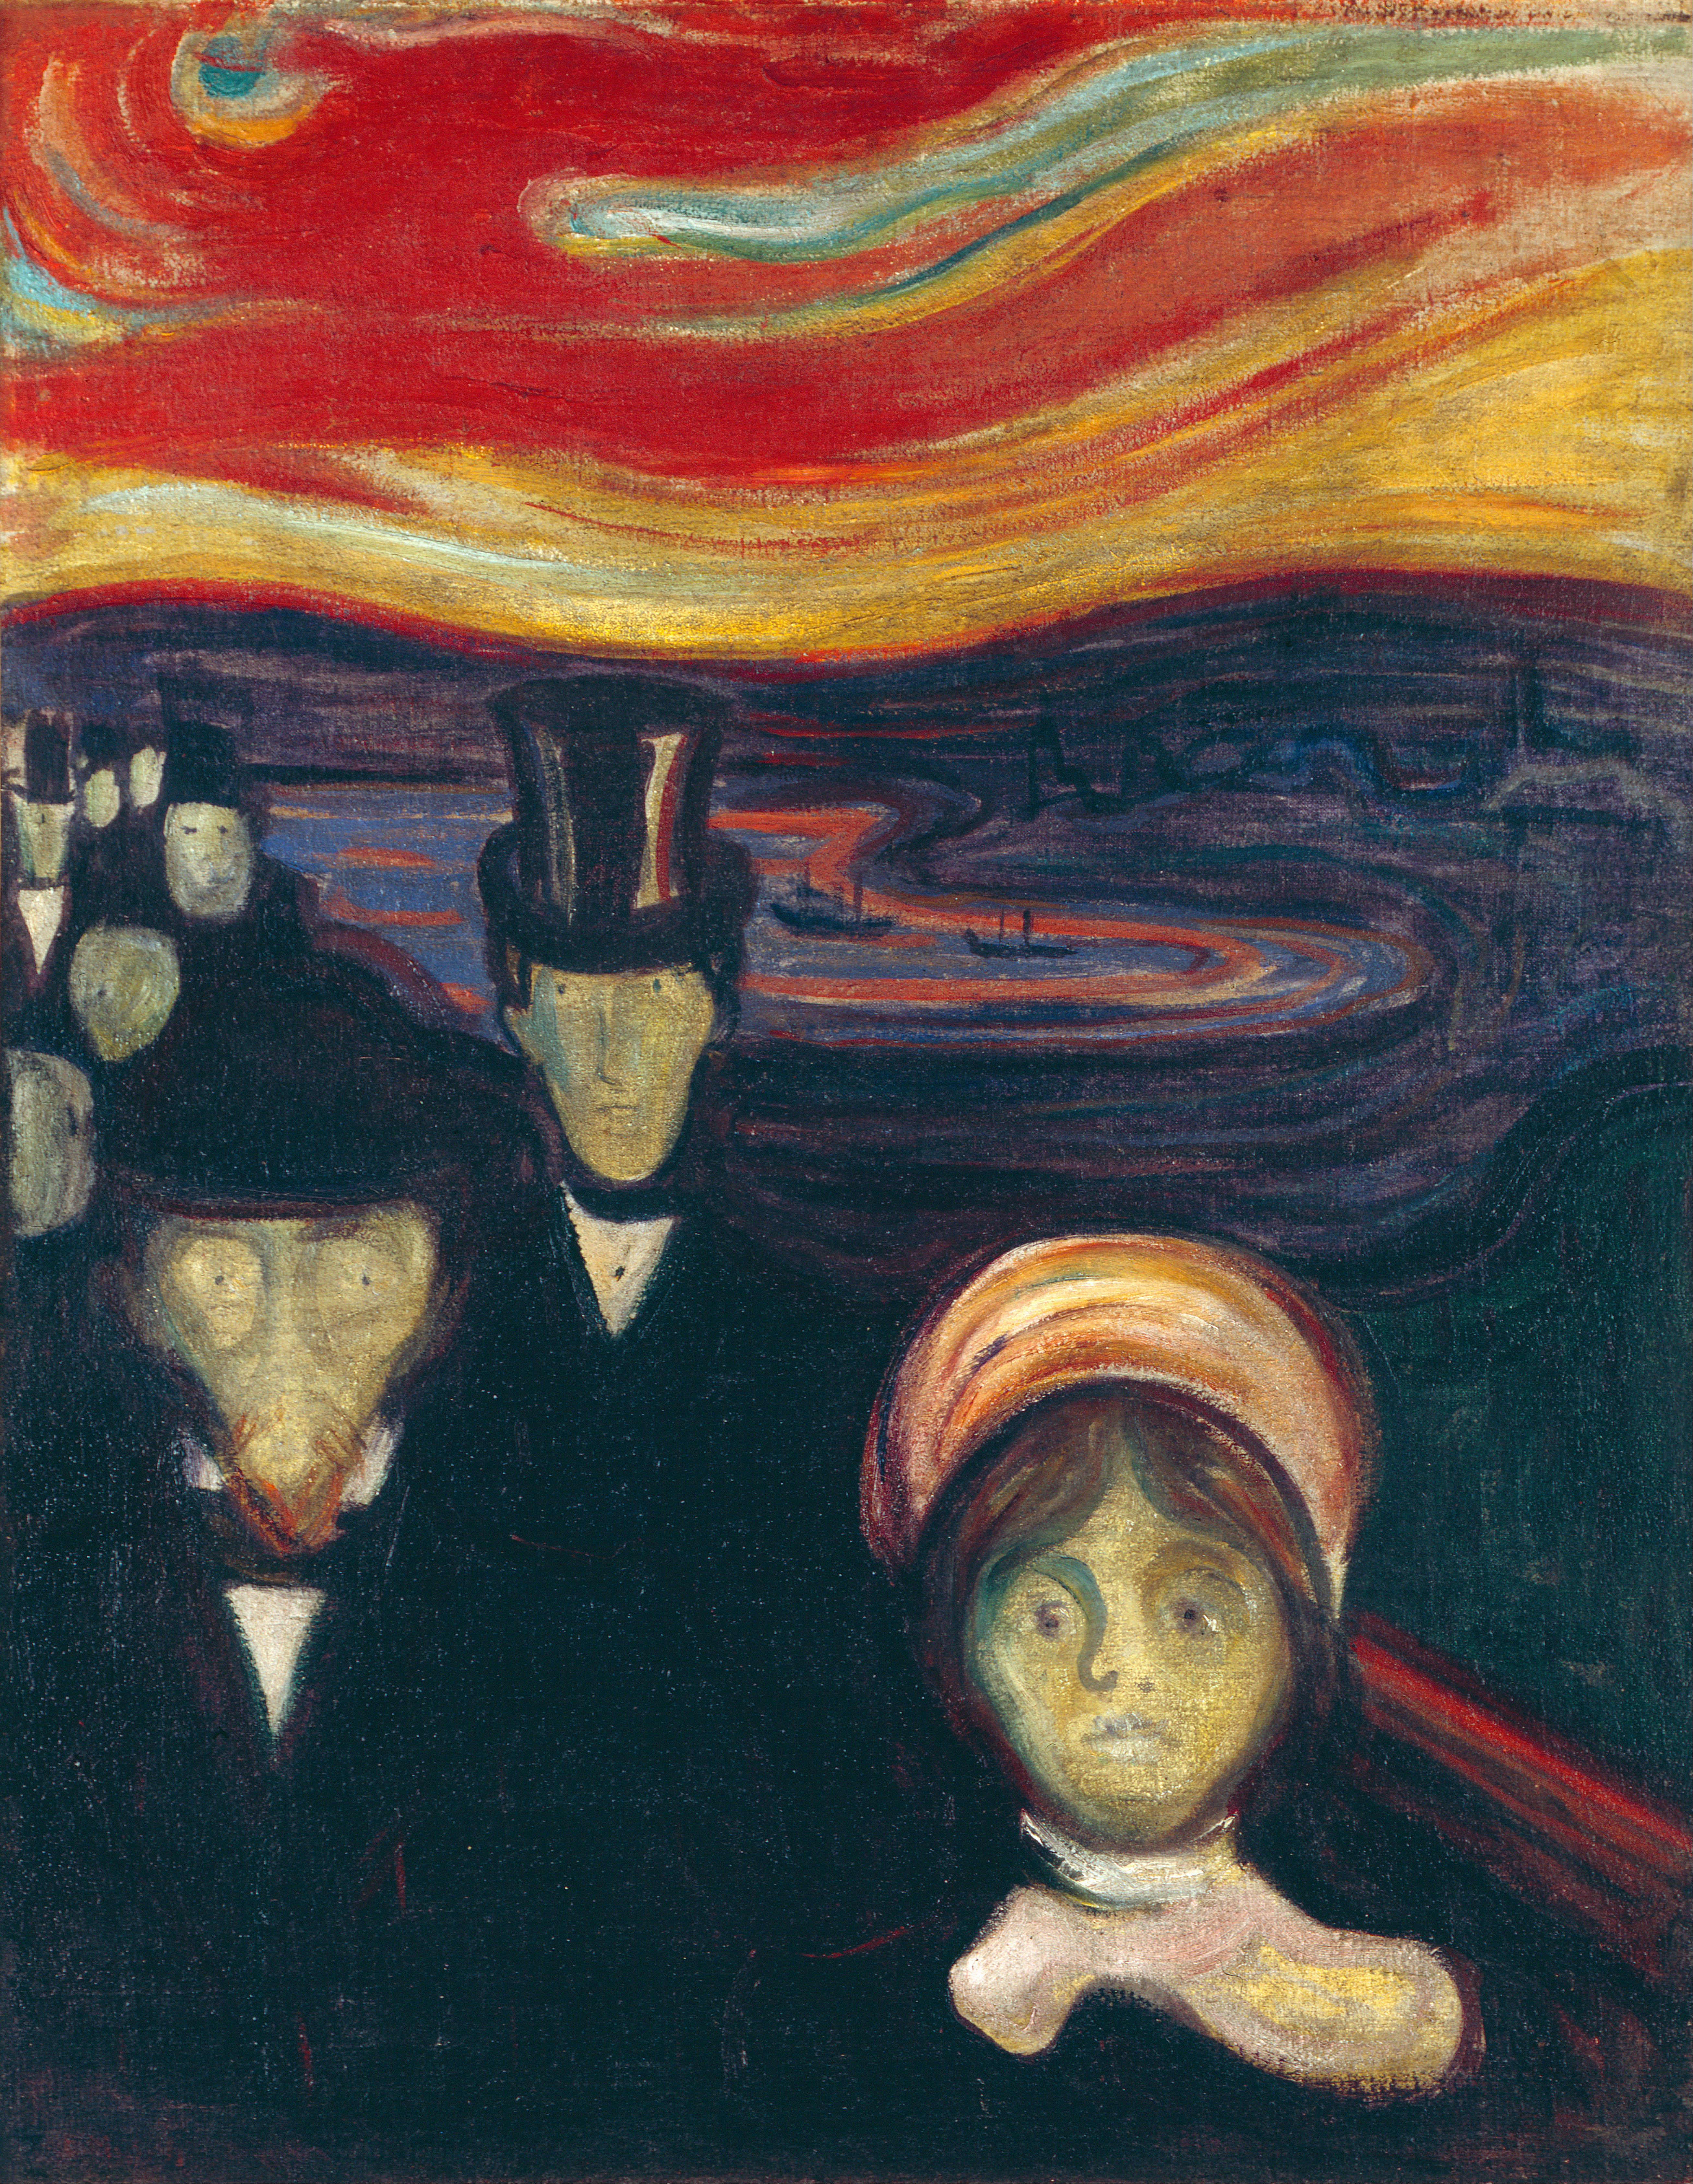 Edvard_Munch_-_Anxiety_-_Google_Art_Project